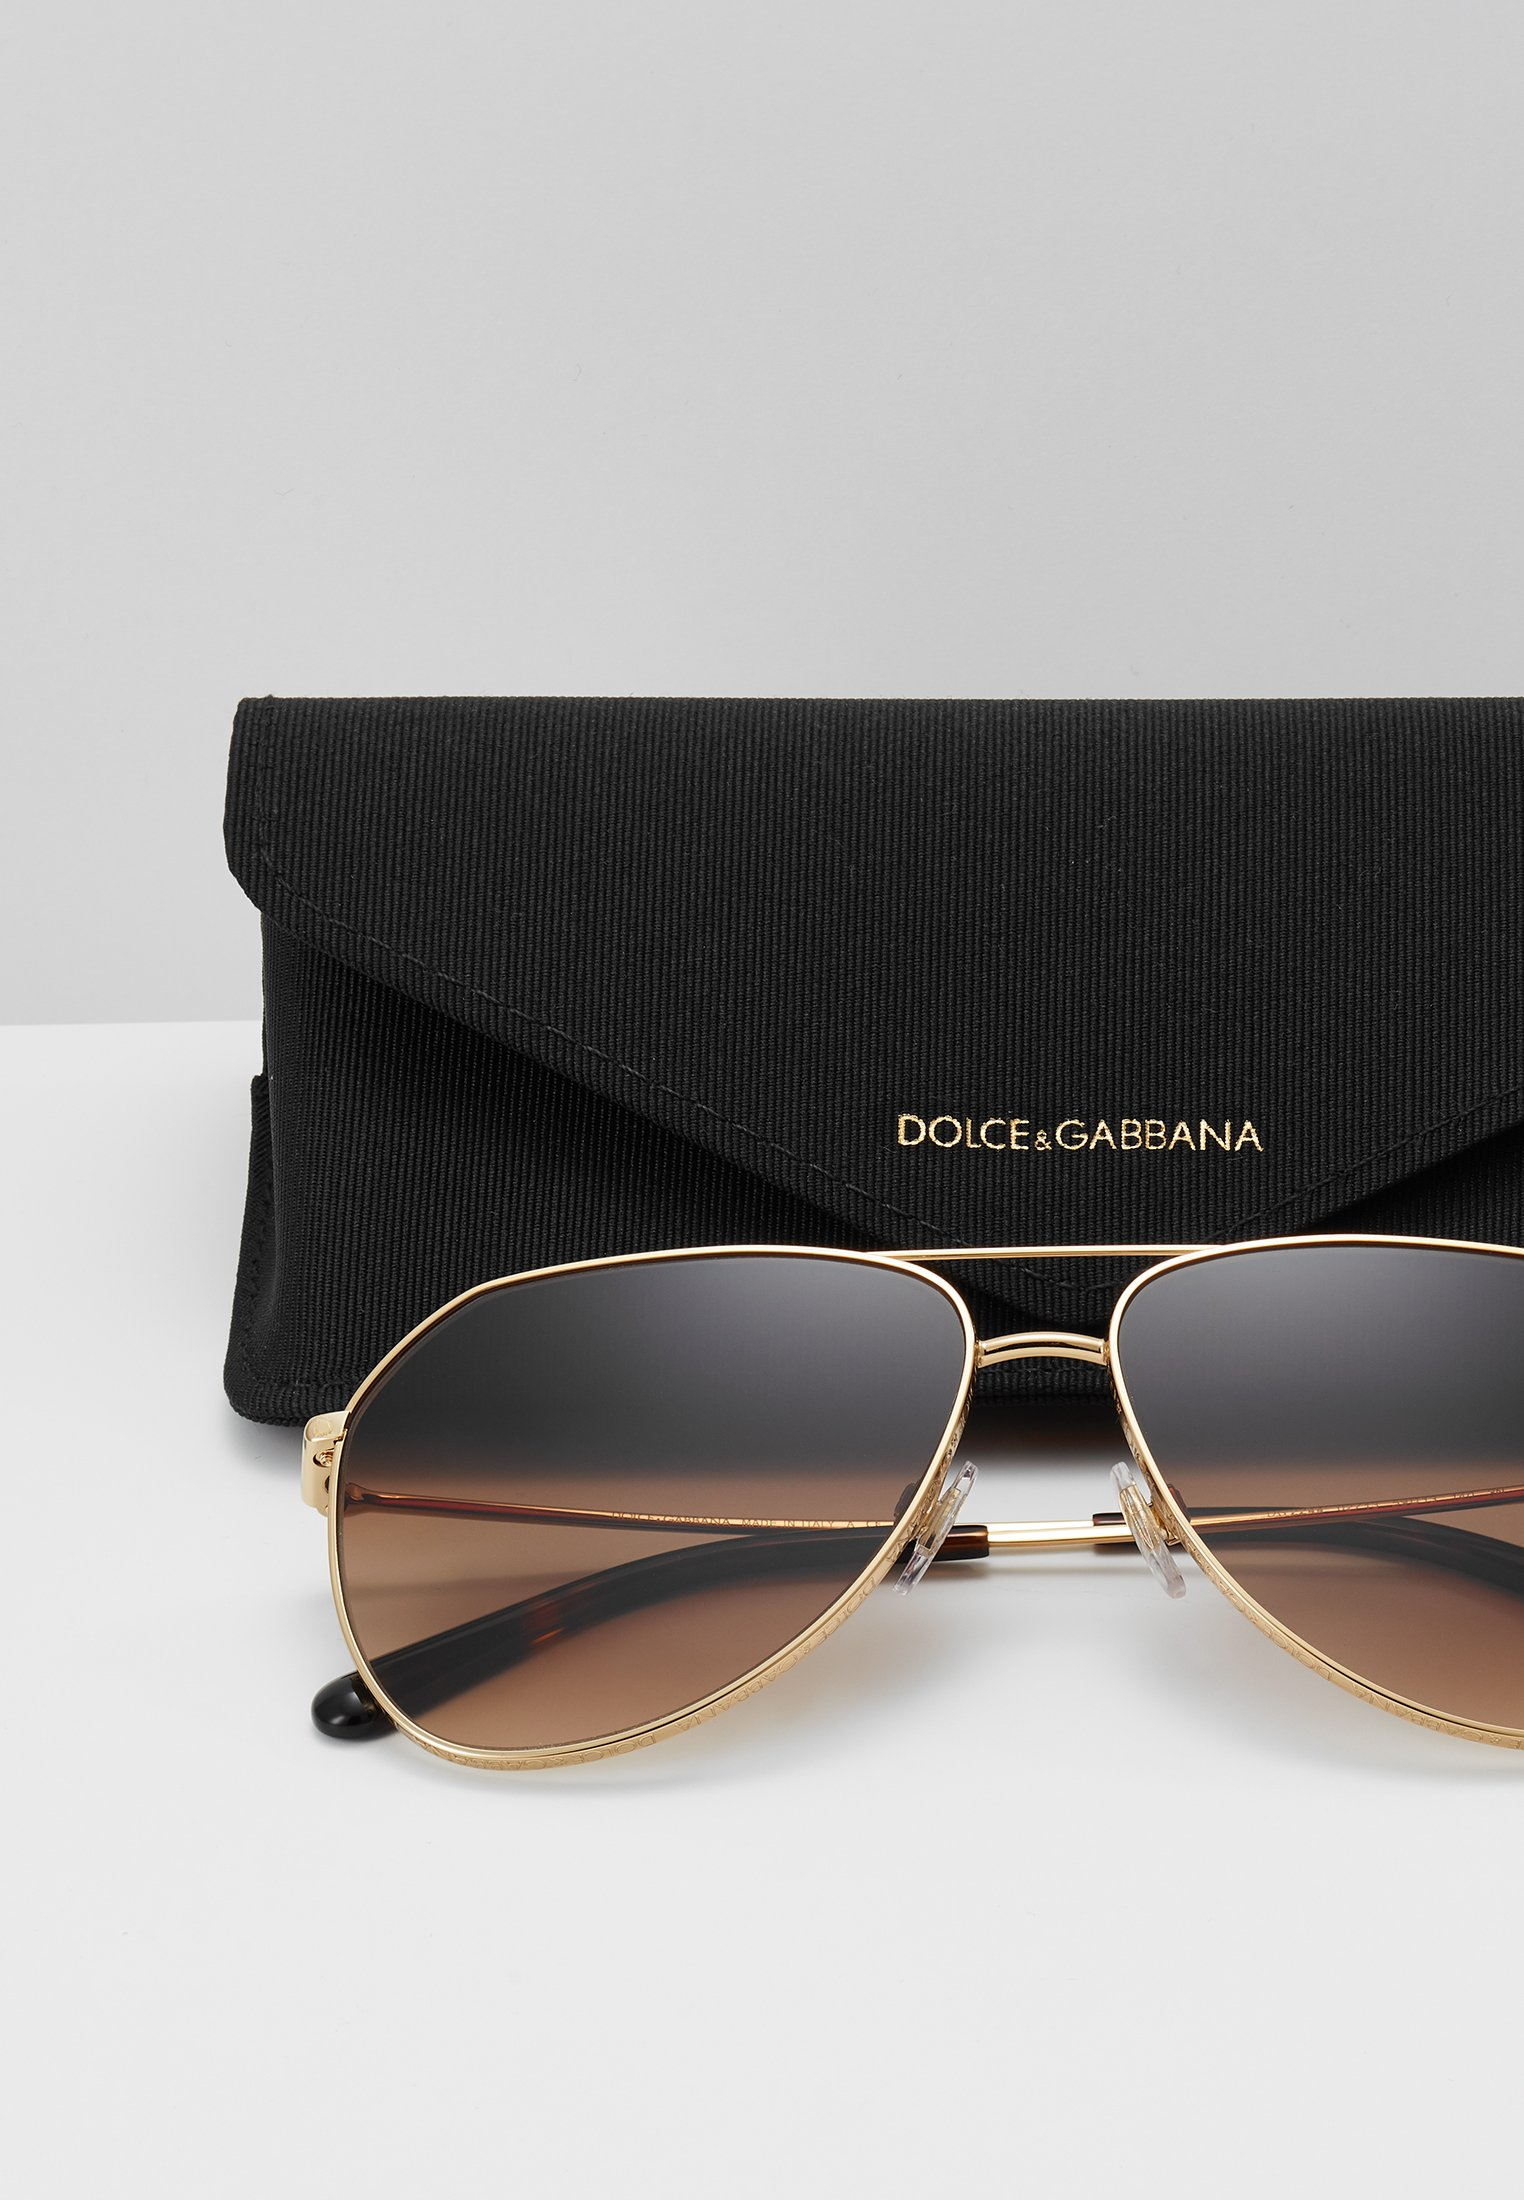 Dolce&Gabbana Solbriller - gold-coloured/gull 5fVXjZCxwPoz0K6